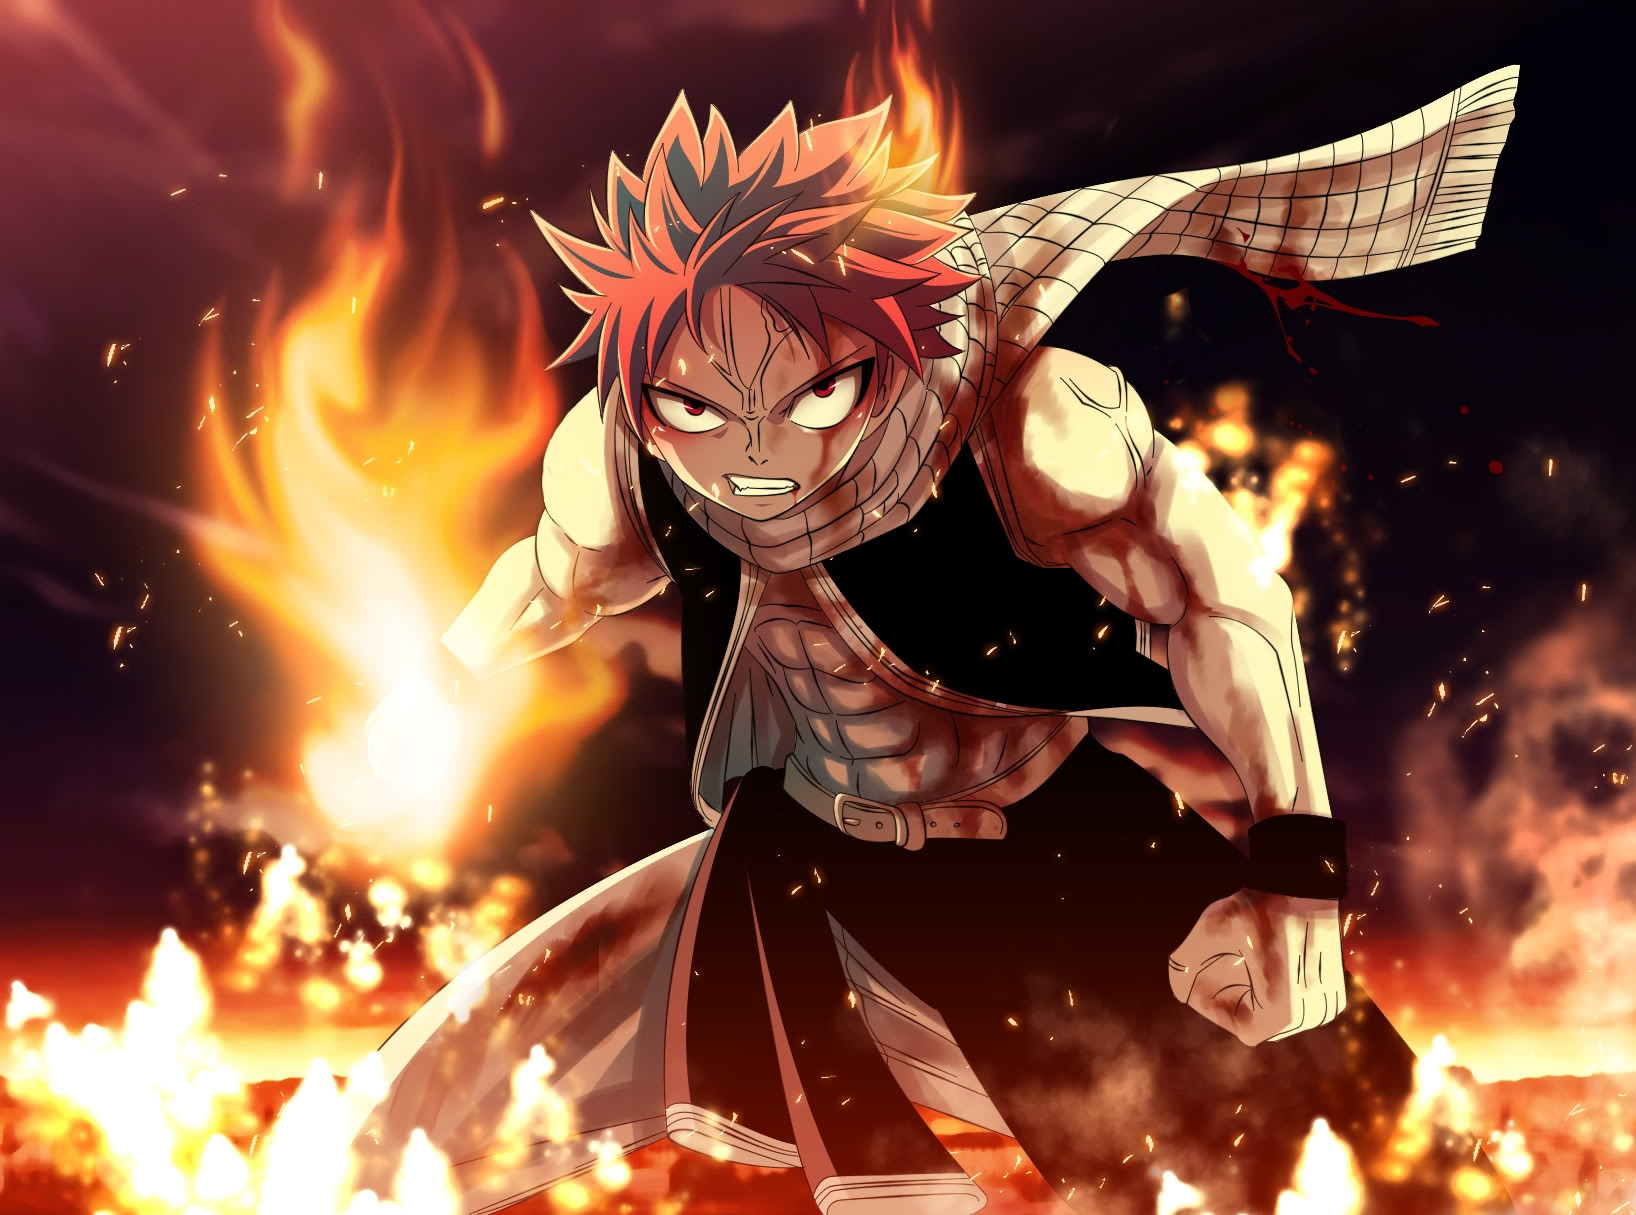 Fairy Tail Computer Wallpapers Desktop Backgrounds 1636x1215 ID 1636x1215